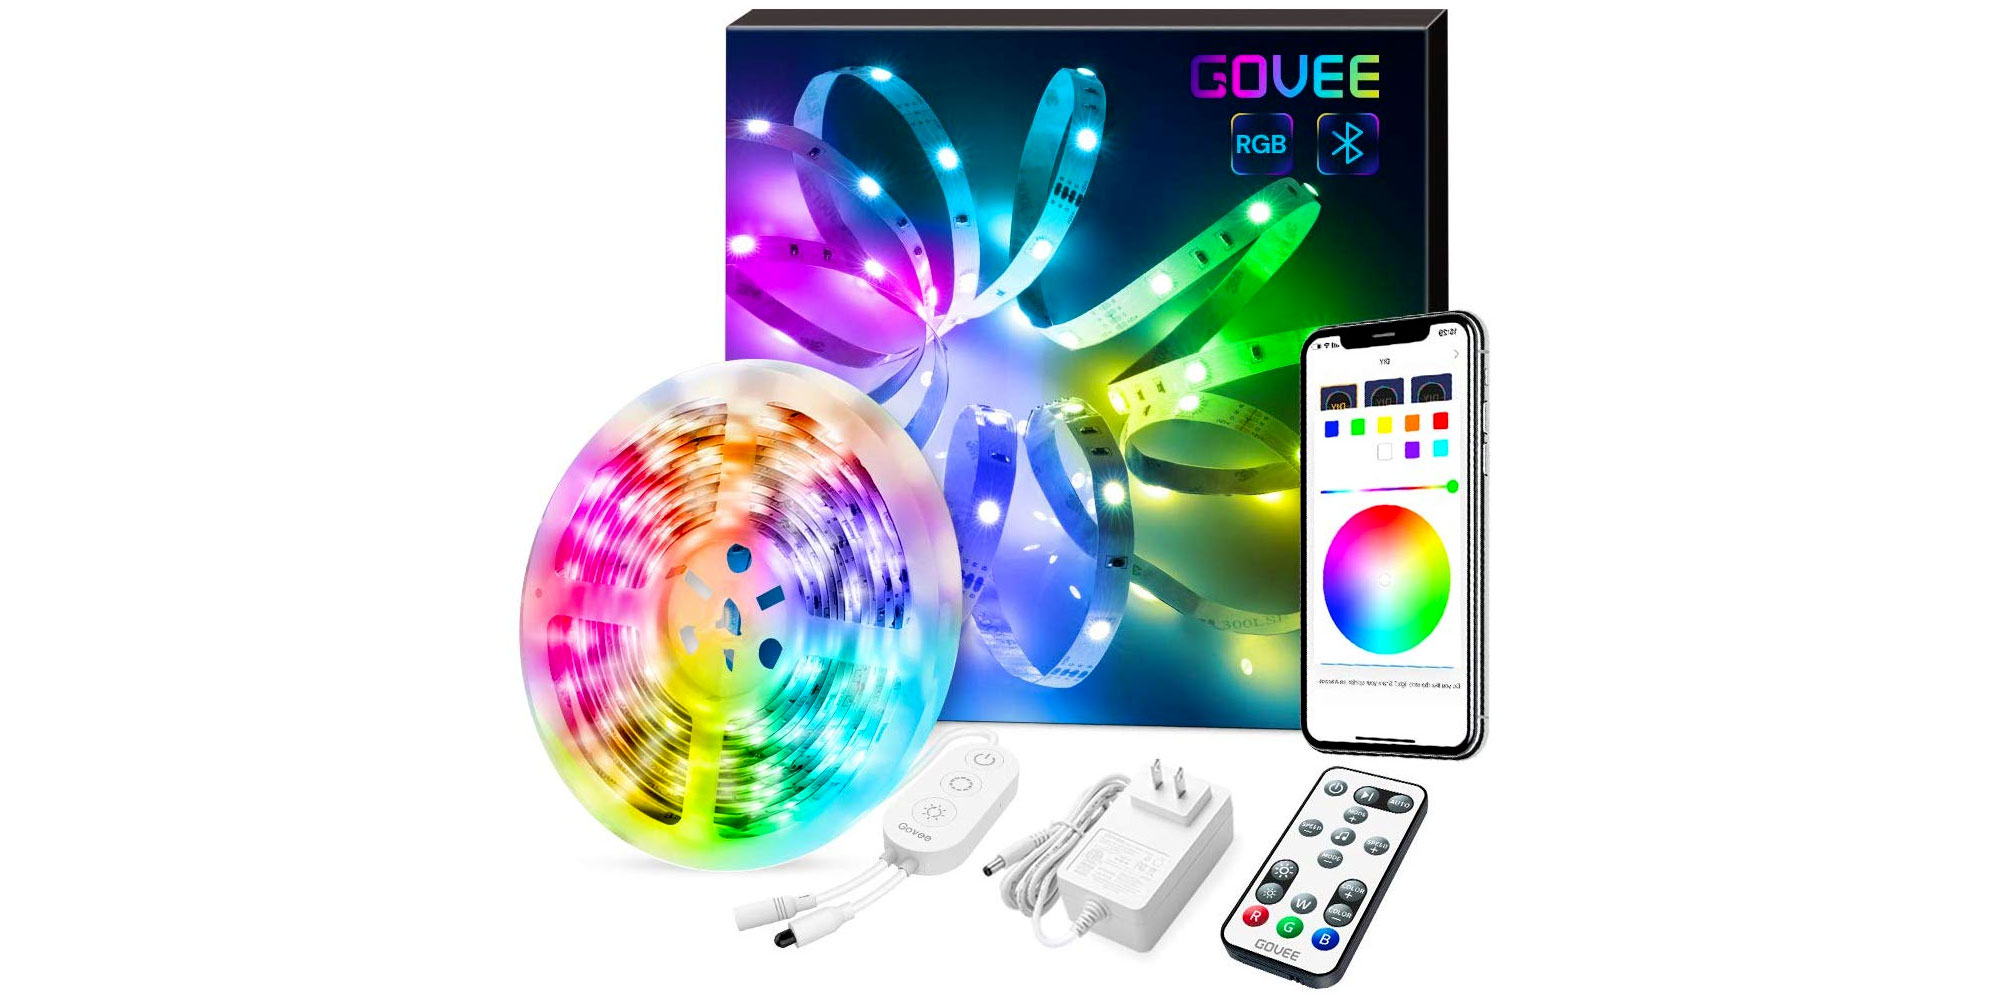 This app-enabled RGB LED strip is perfect for any decor at just $16 - 9to5Toys